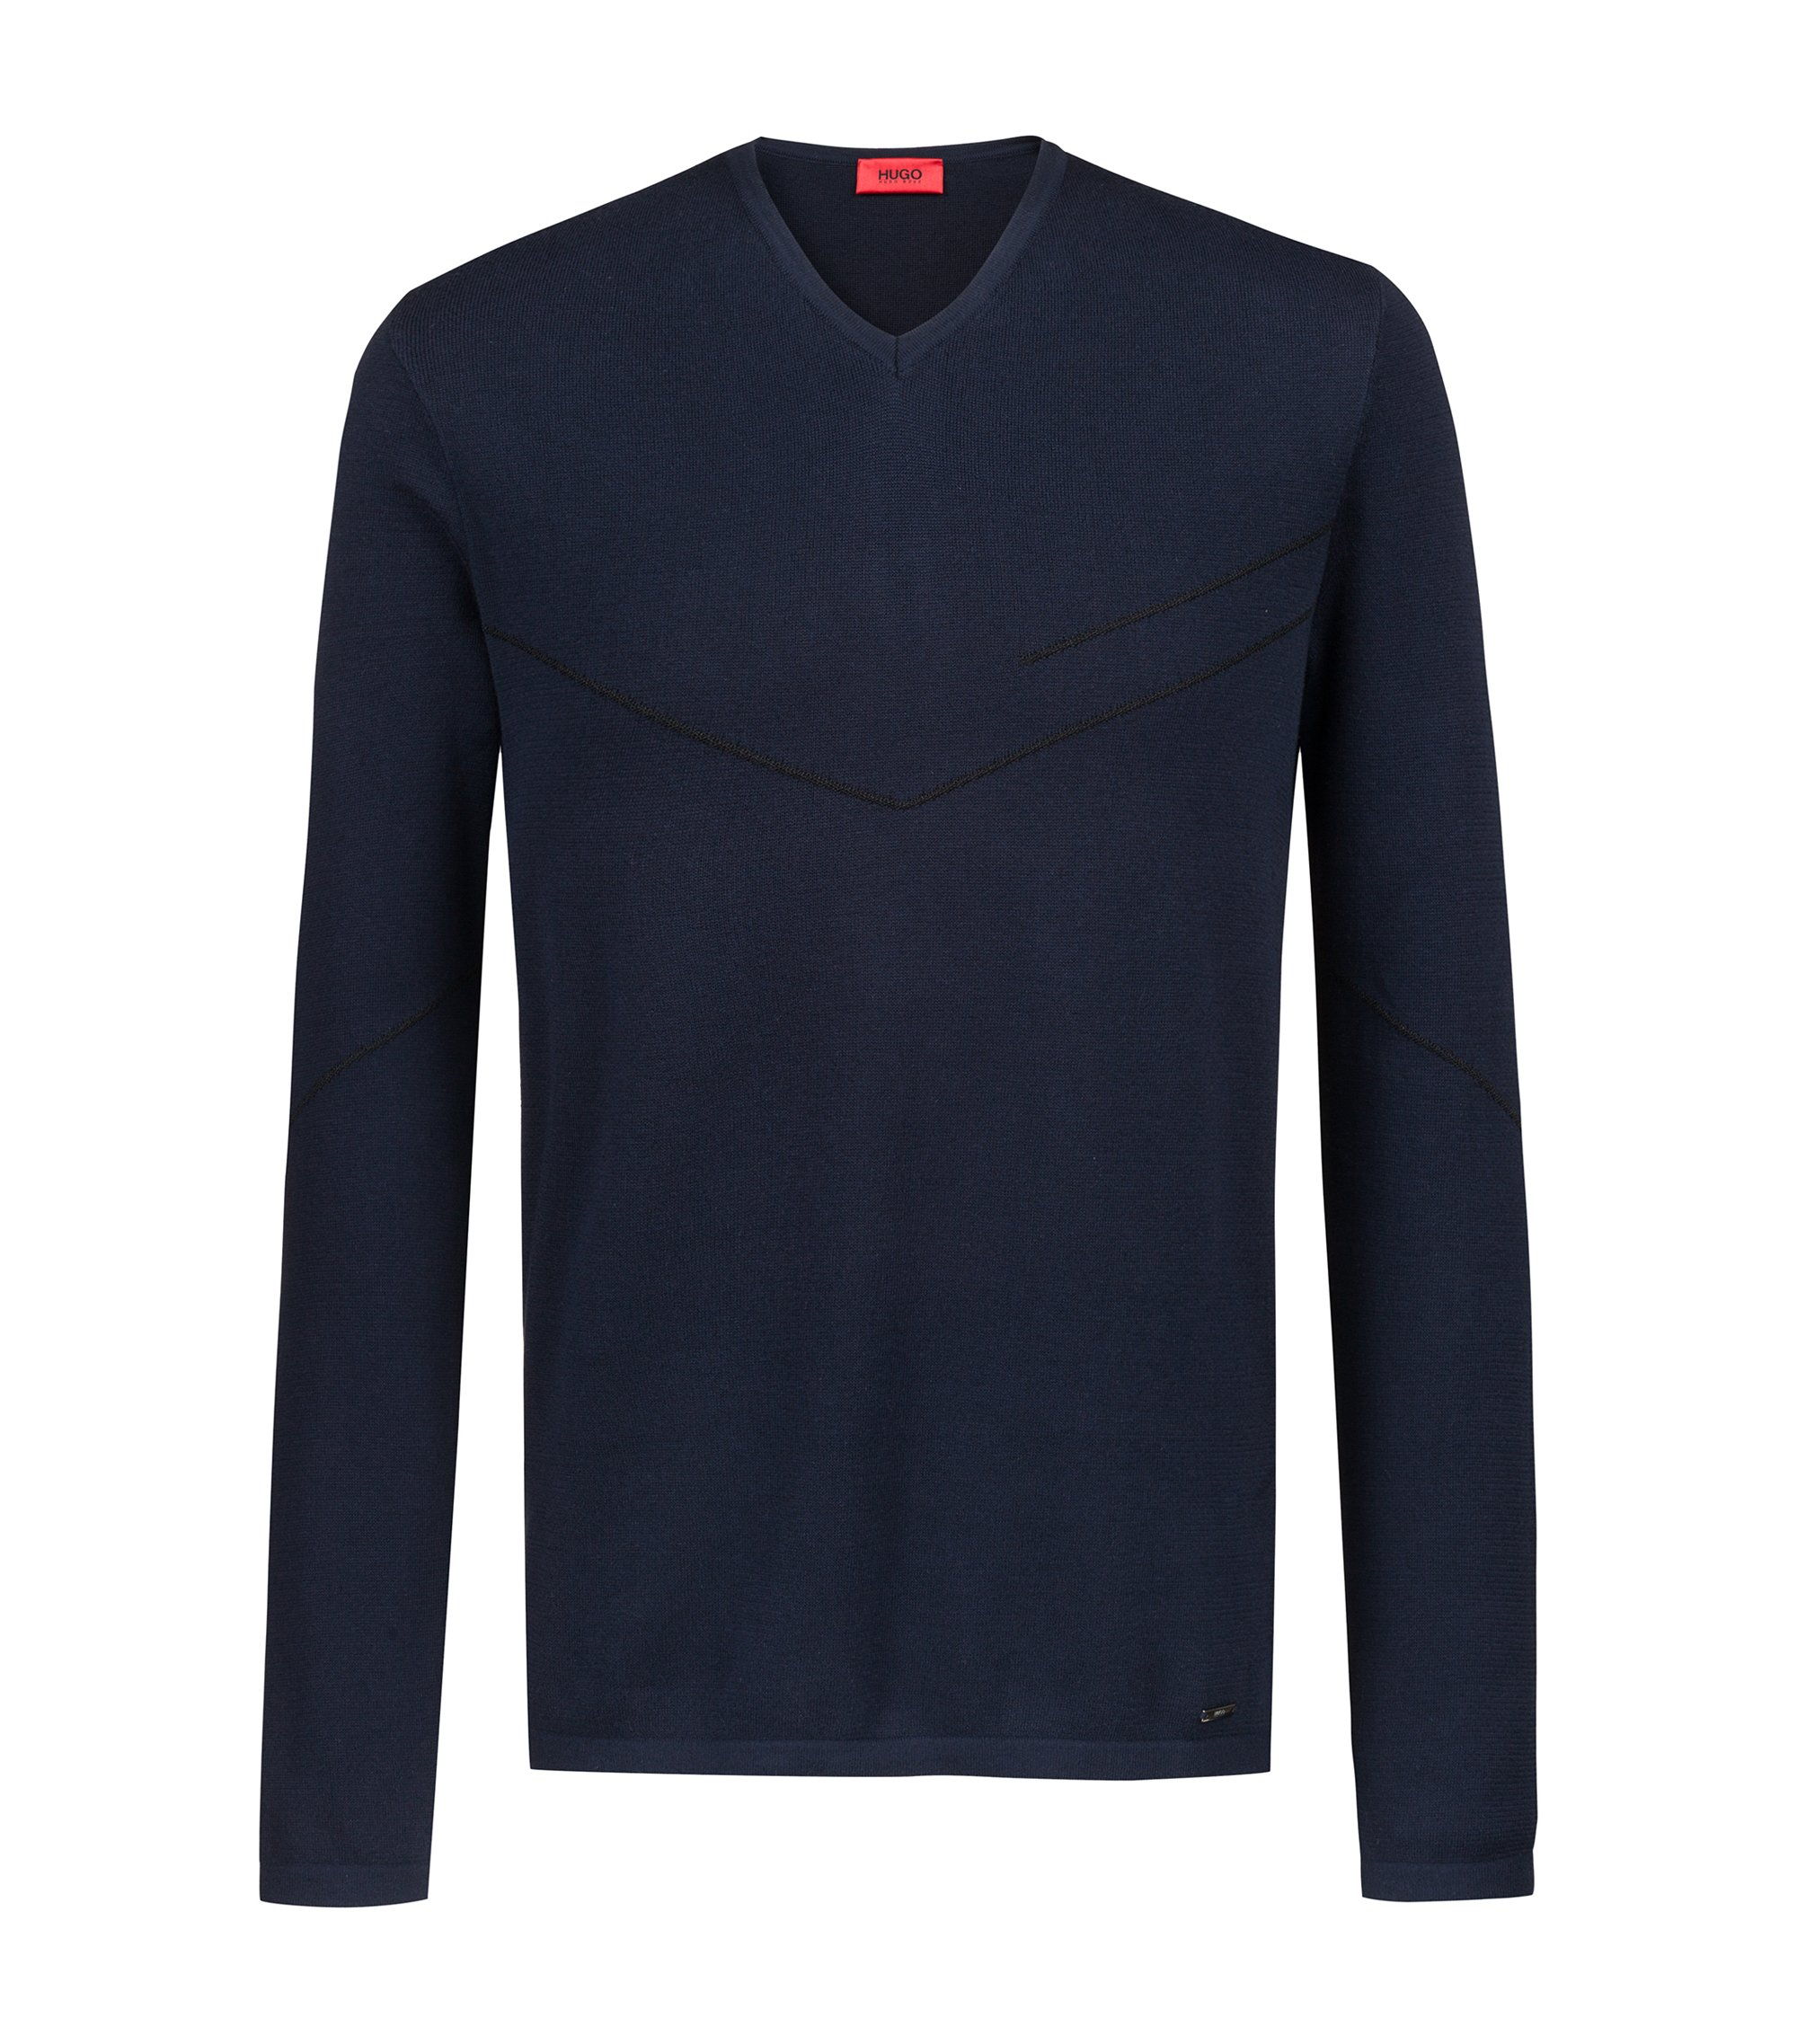 Bits & Bytes Capsule V-neck sweater with lustrous jacquard details, Dark Blue